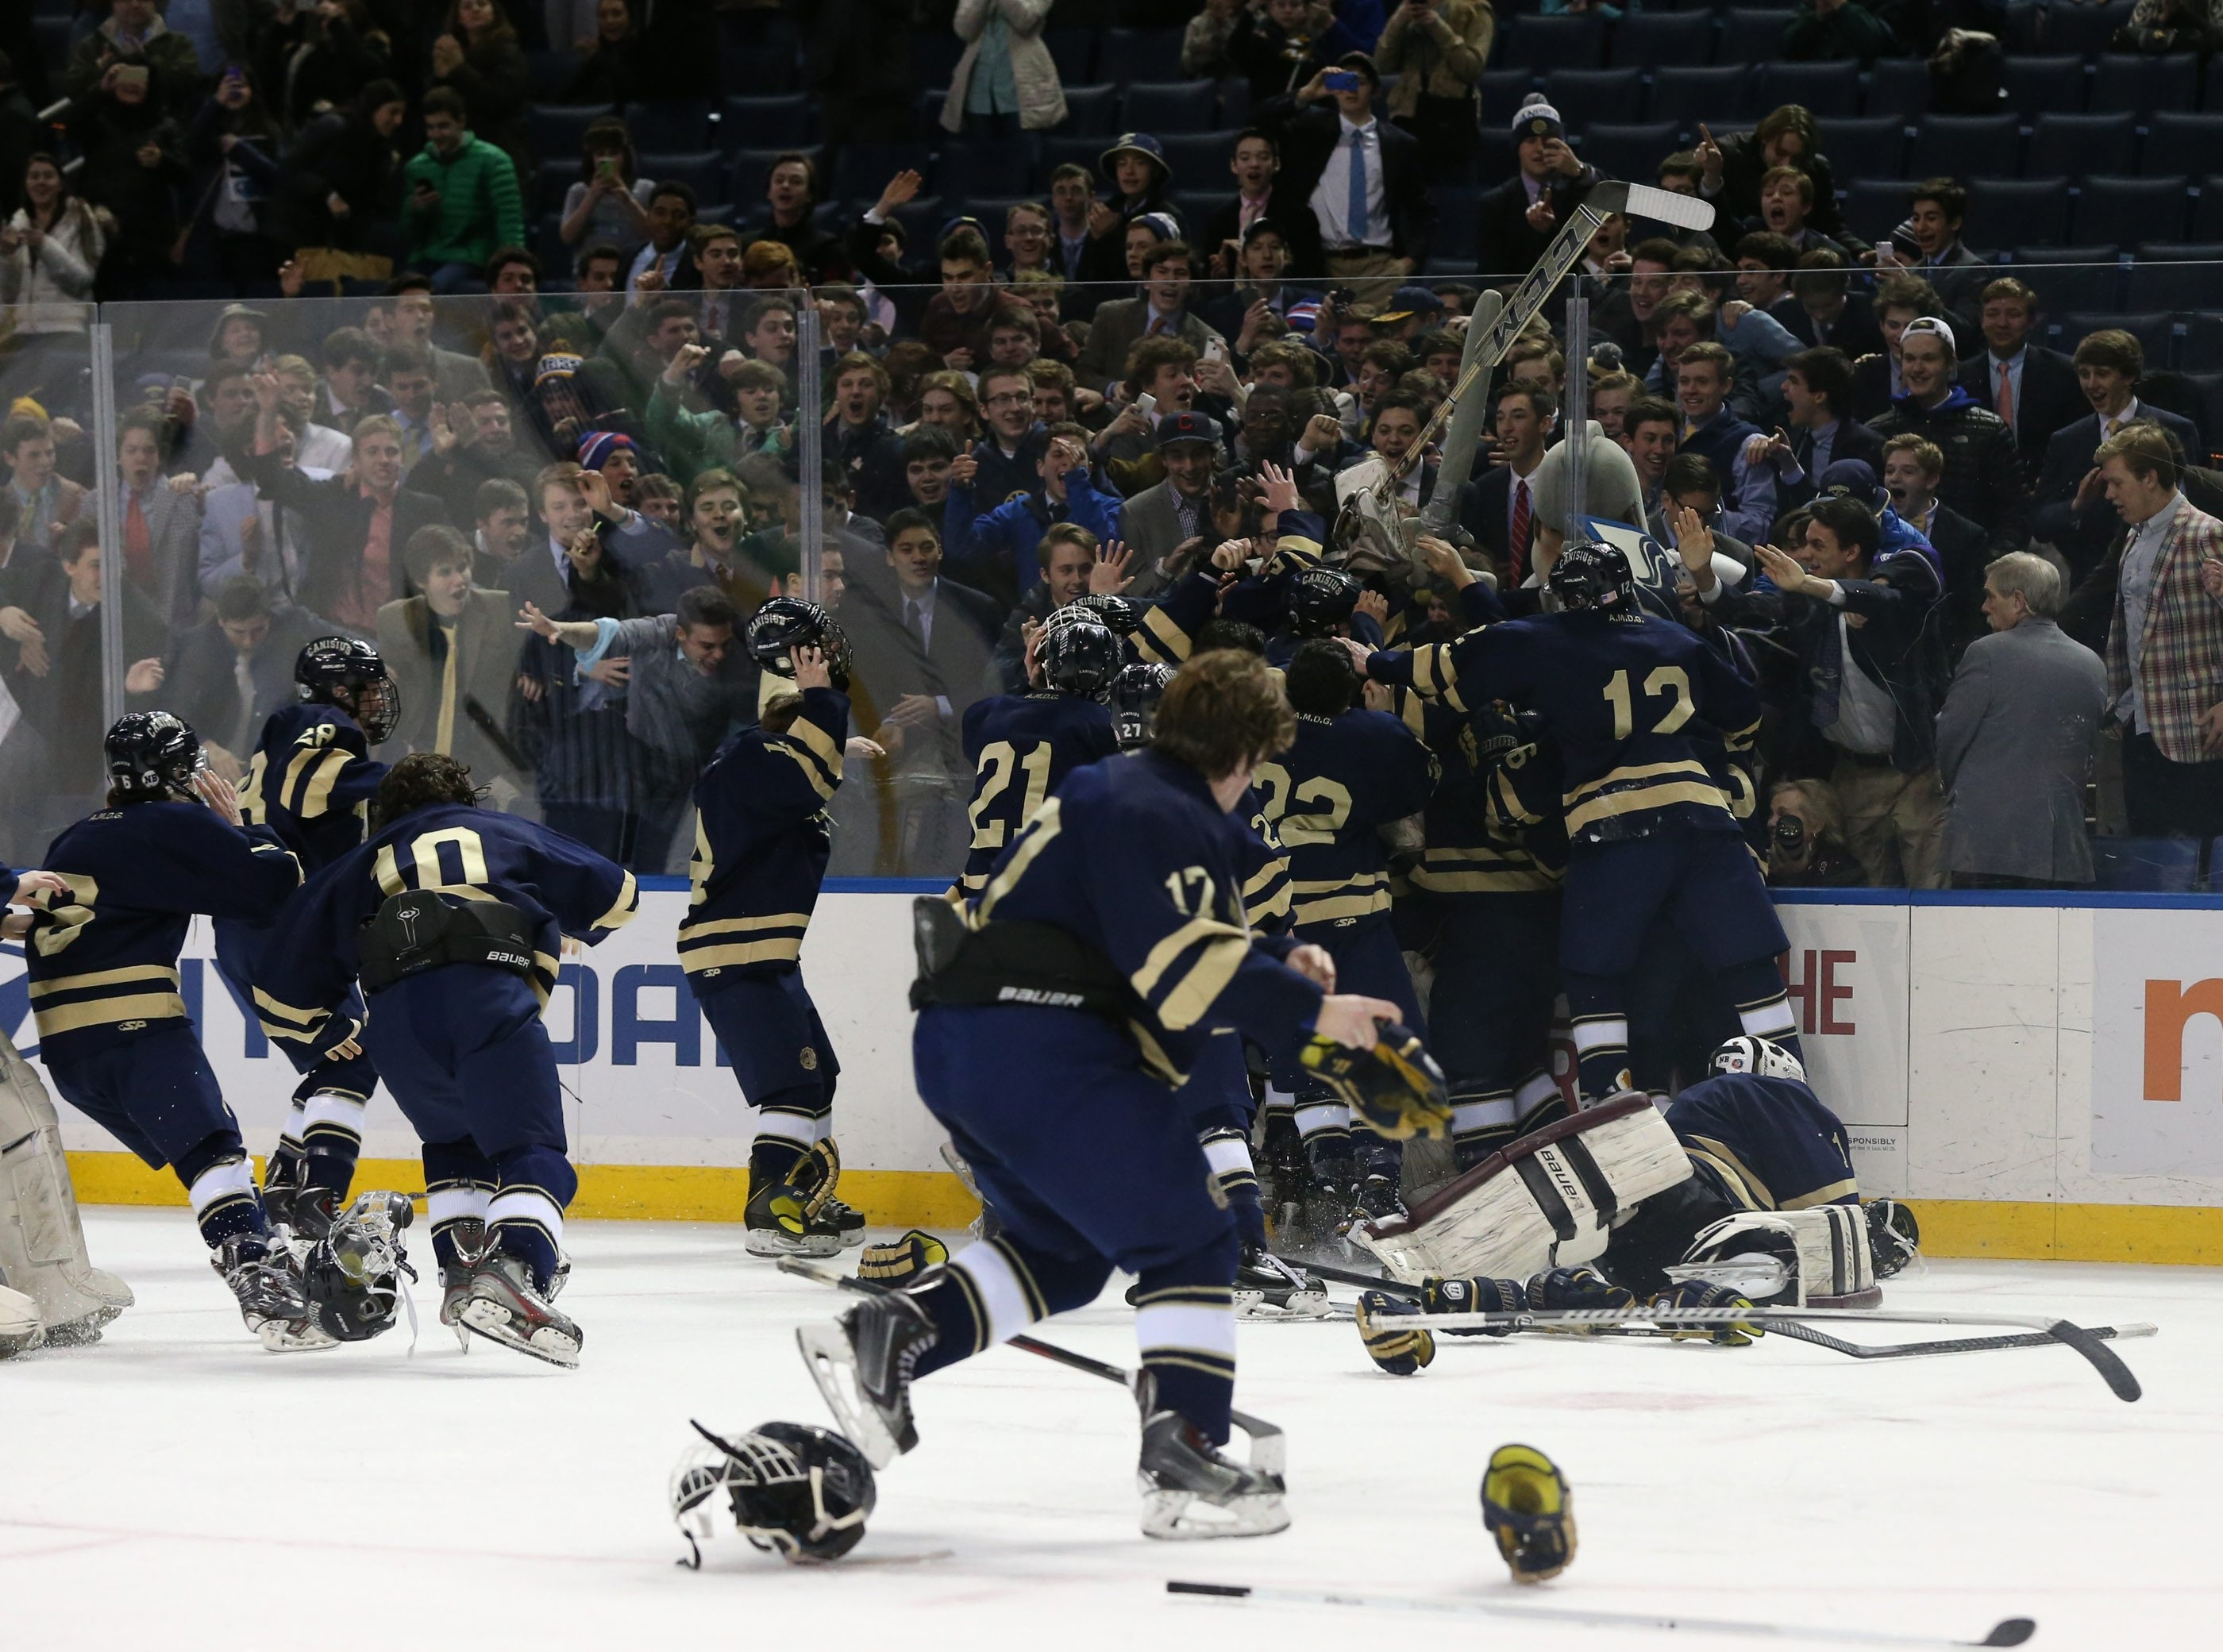 Canisius celebrates its win over St. Joe's as it claims the Niagara Cup championship at First Niagara Center.